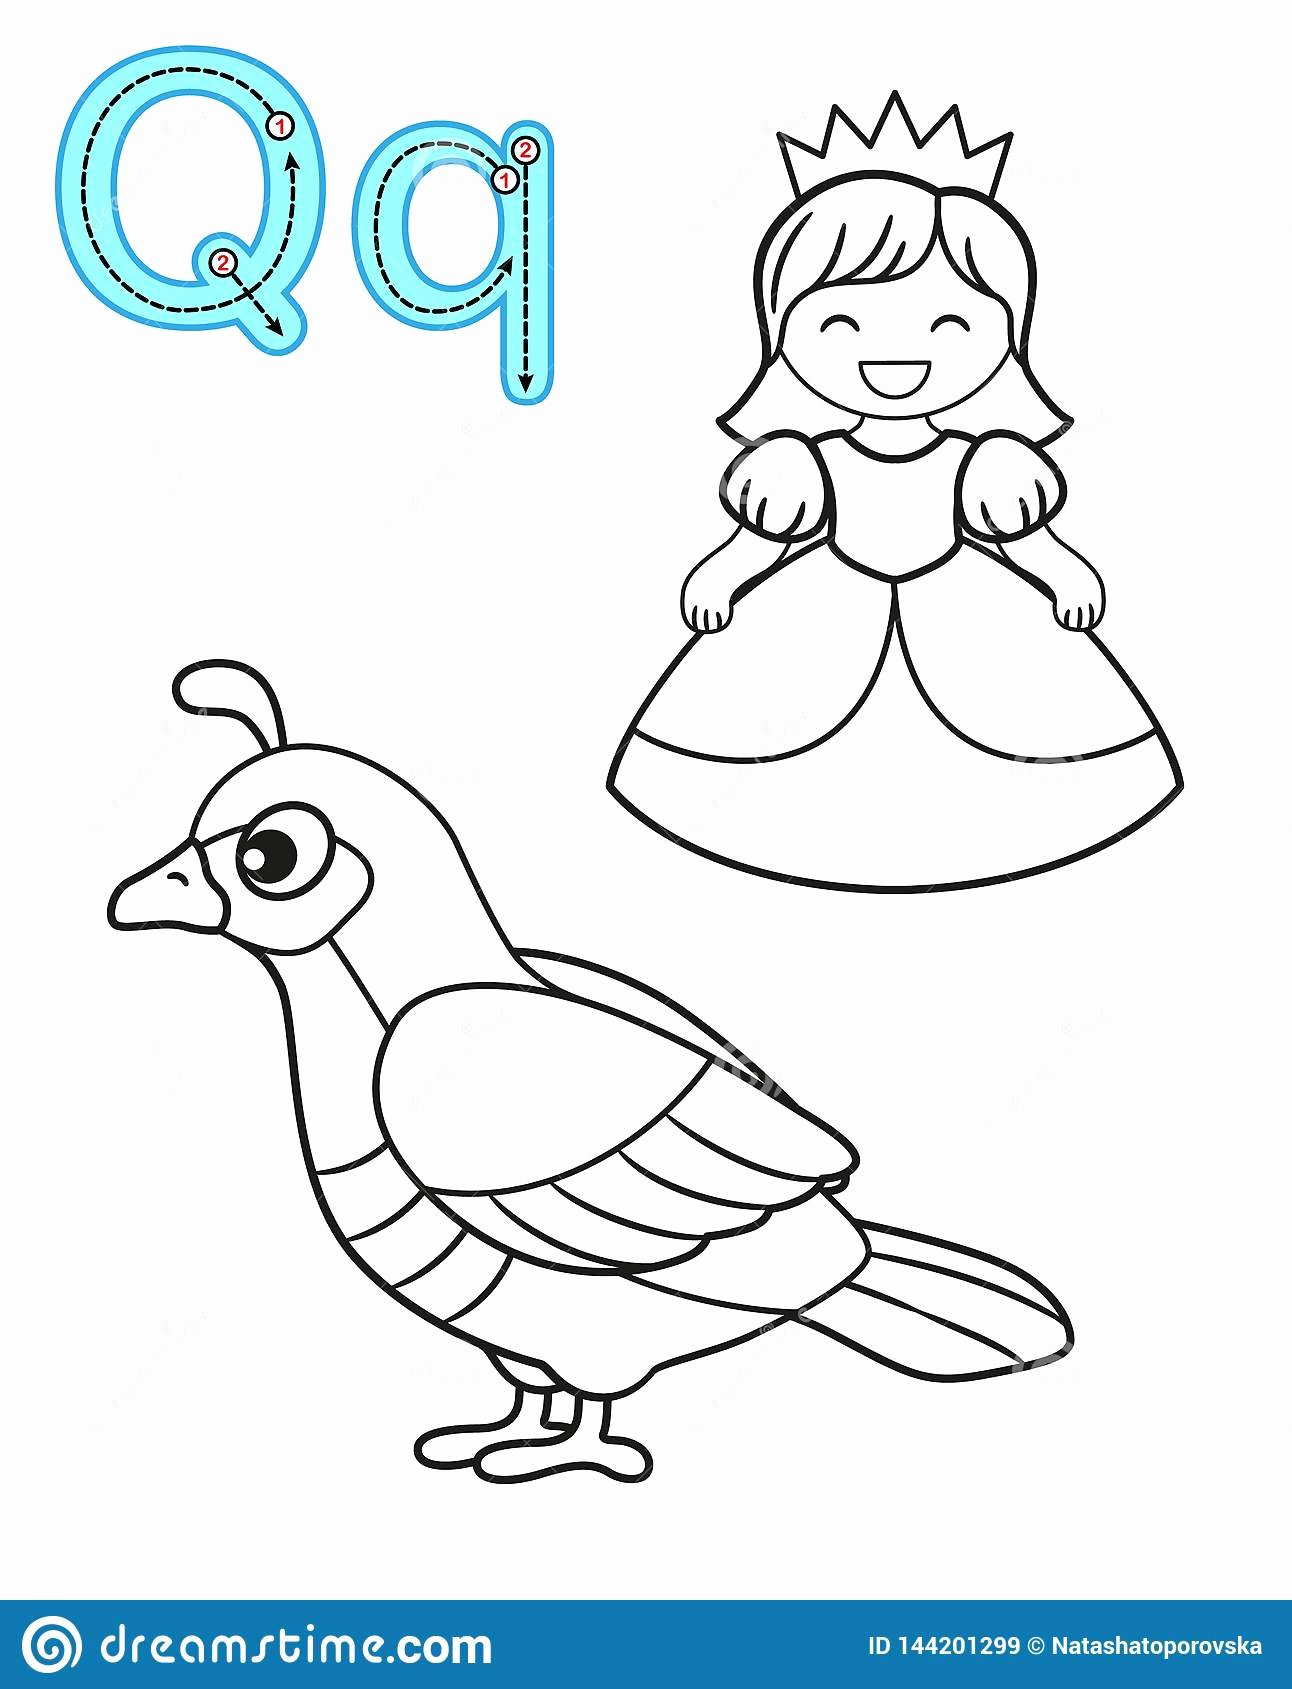 Quail Worksheets for Preschoolers top Printable Coloring Page for Kindergarten and Preschool Card